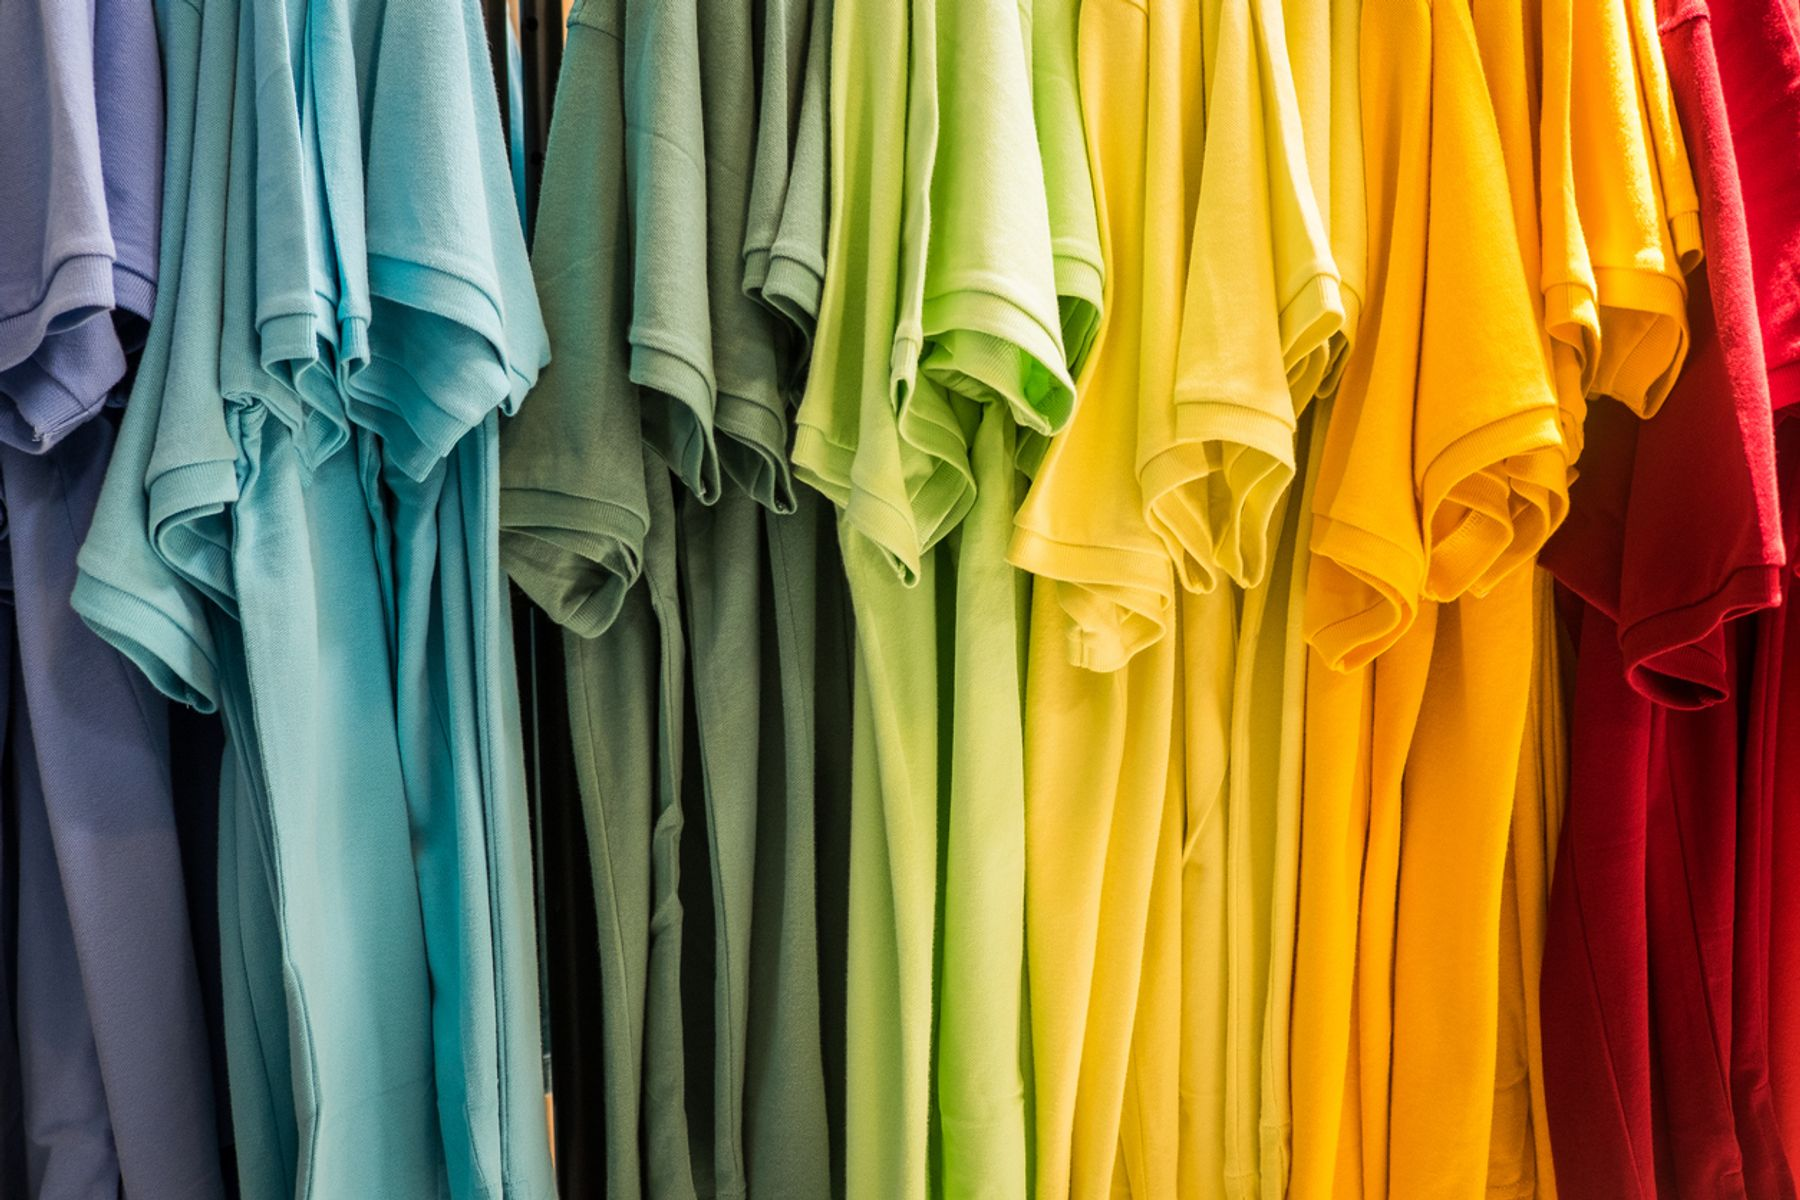 Coloured clothes fading after multiple washes